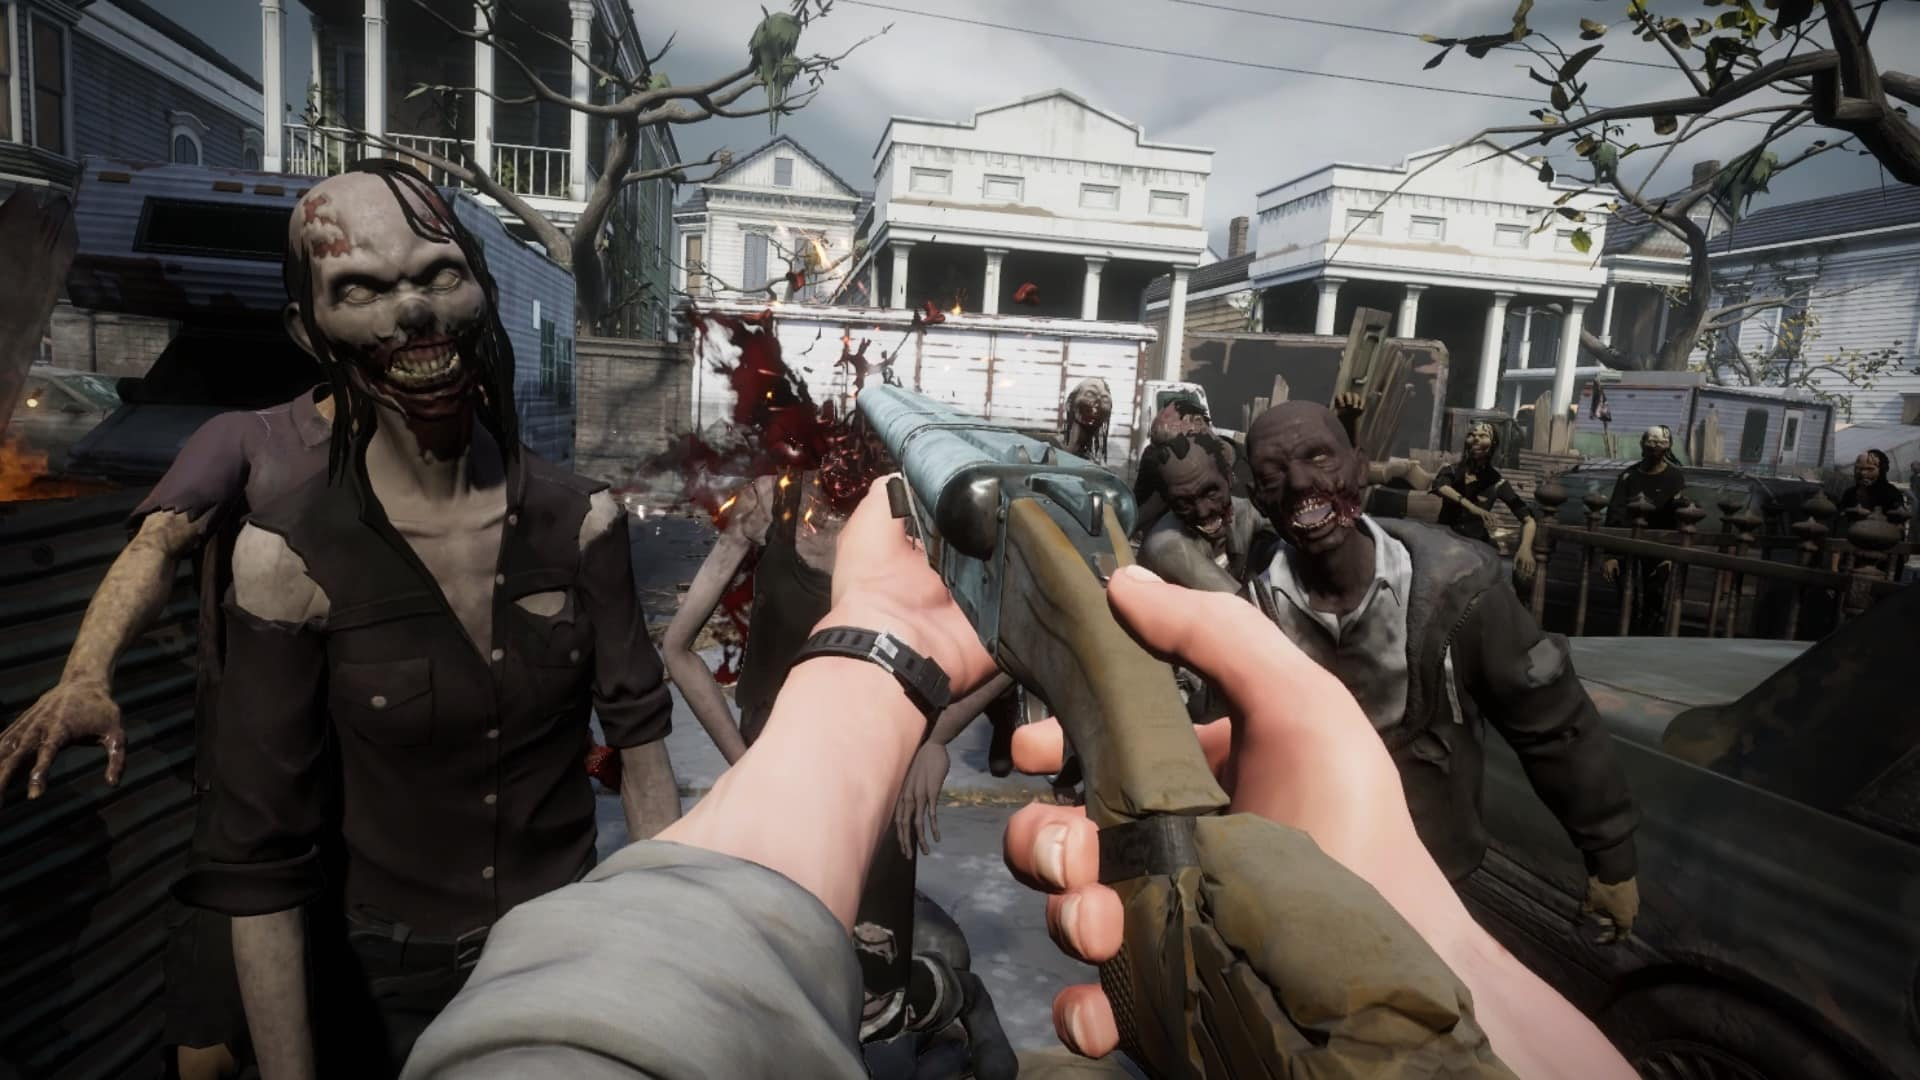 The Walking Dead: Saints & Sinners Skydance Interactive VR game launch trailers